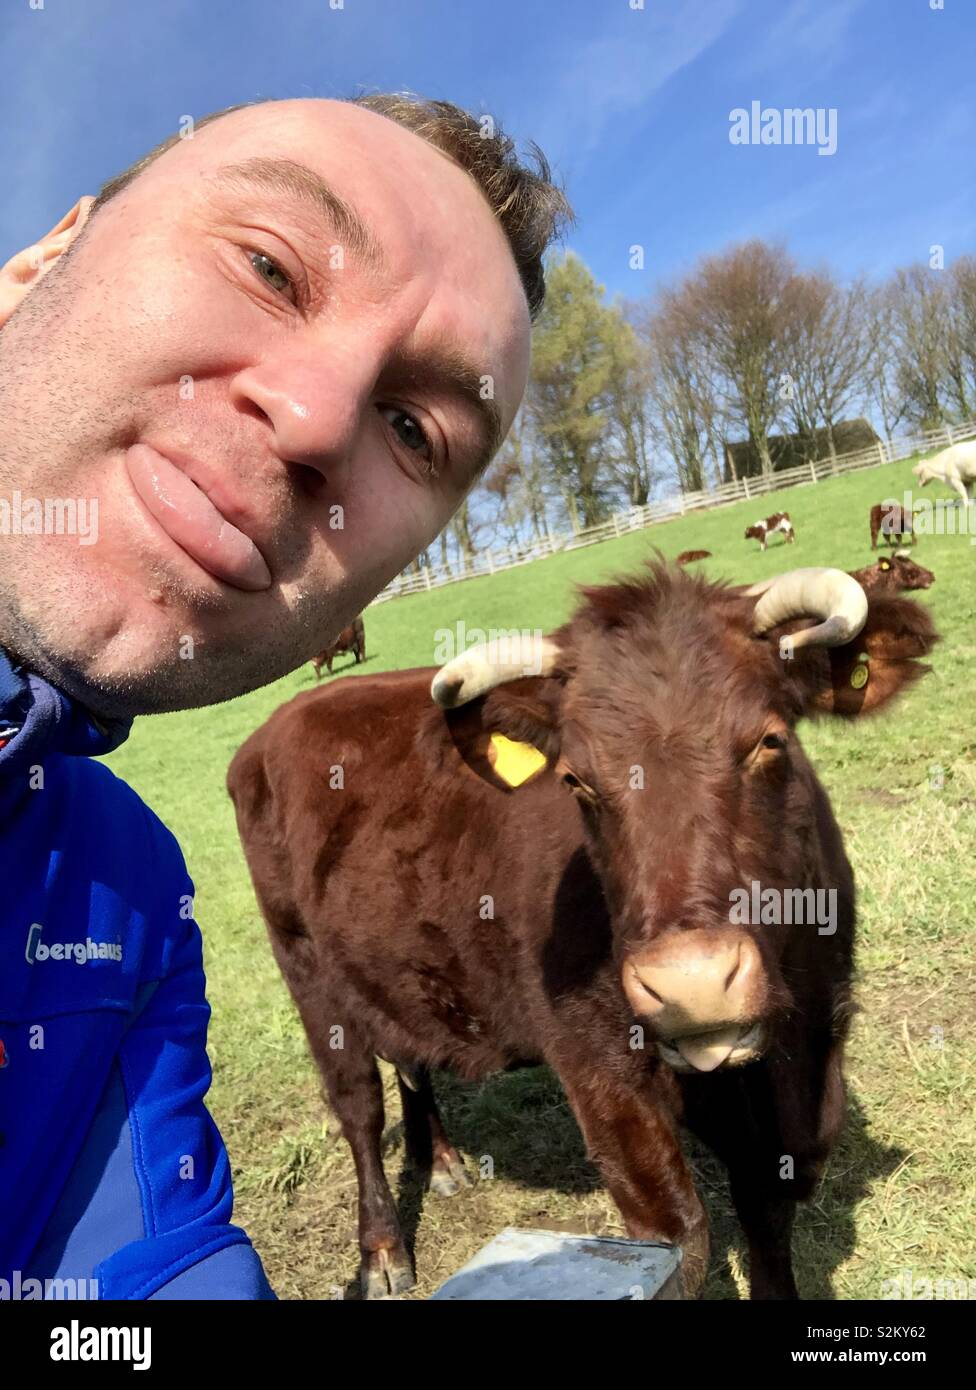 A cow selfie and I - Stock Image